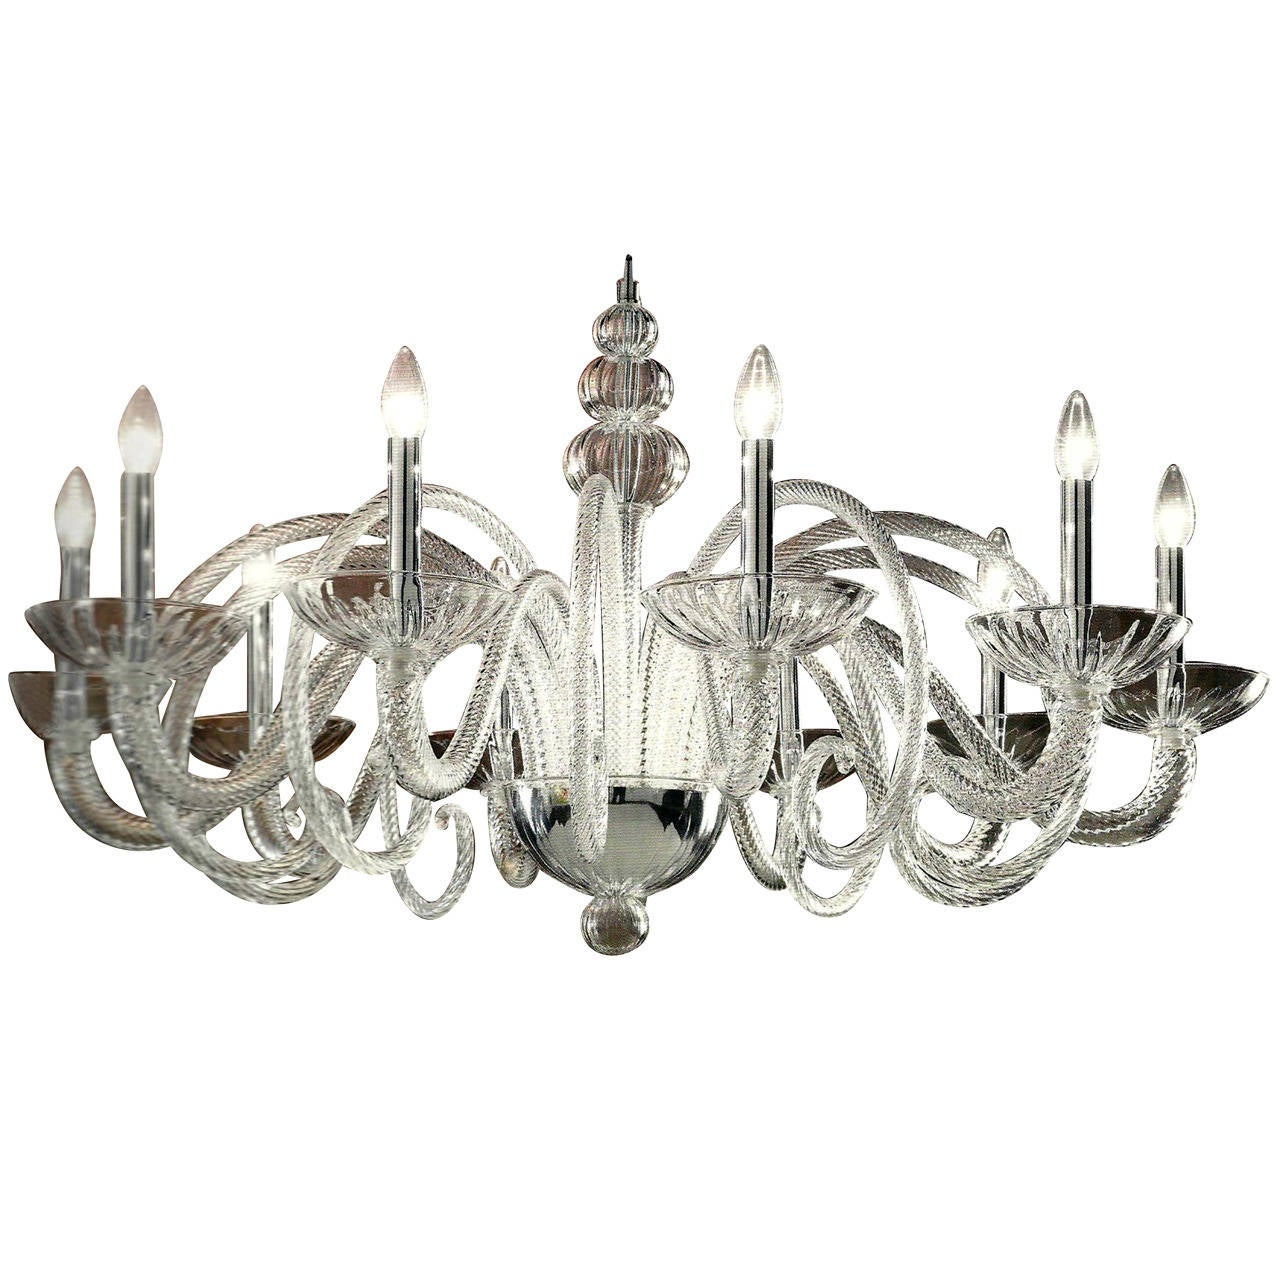 Large Italian MId-Century Modern Ten-Arm Murano / Venetian  Glass Chandelier For Sale